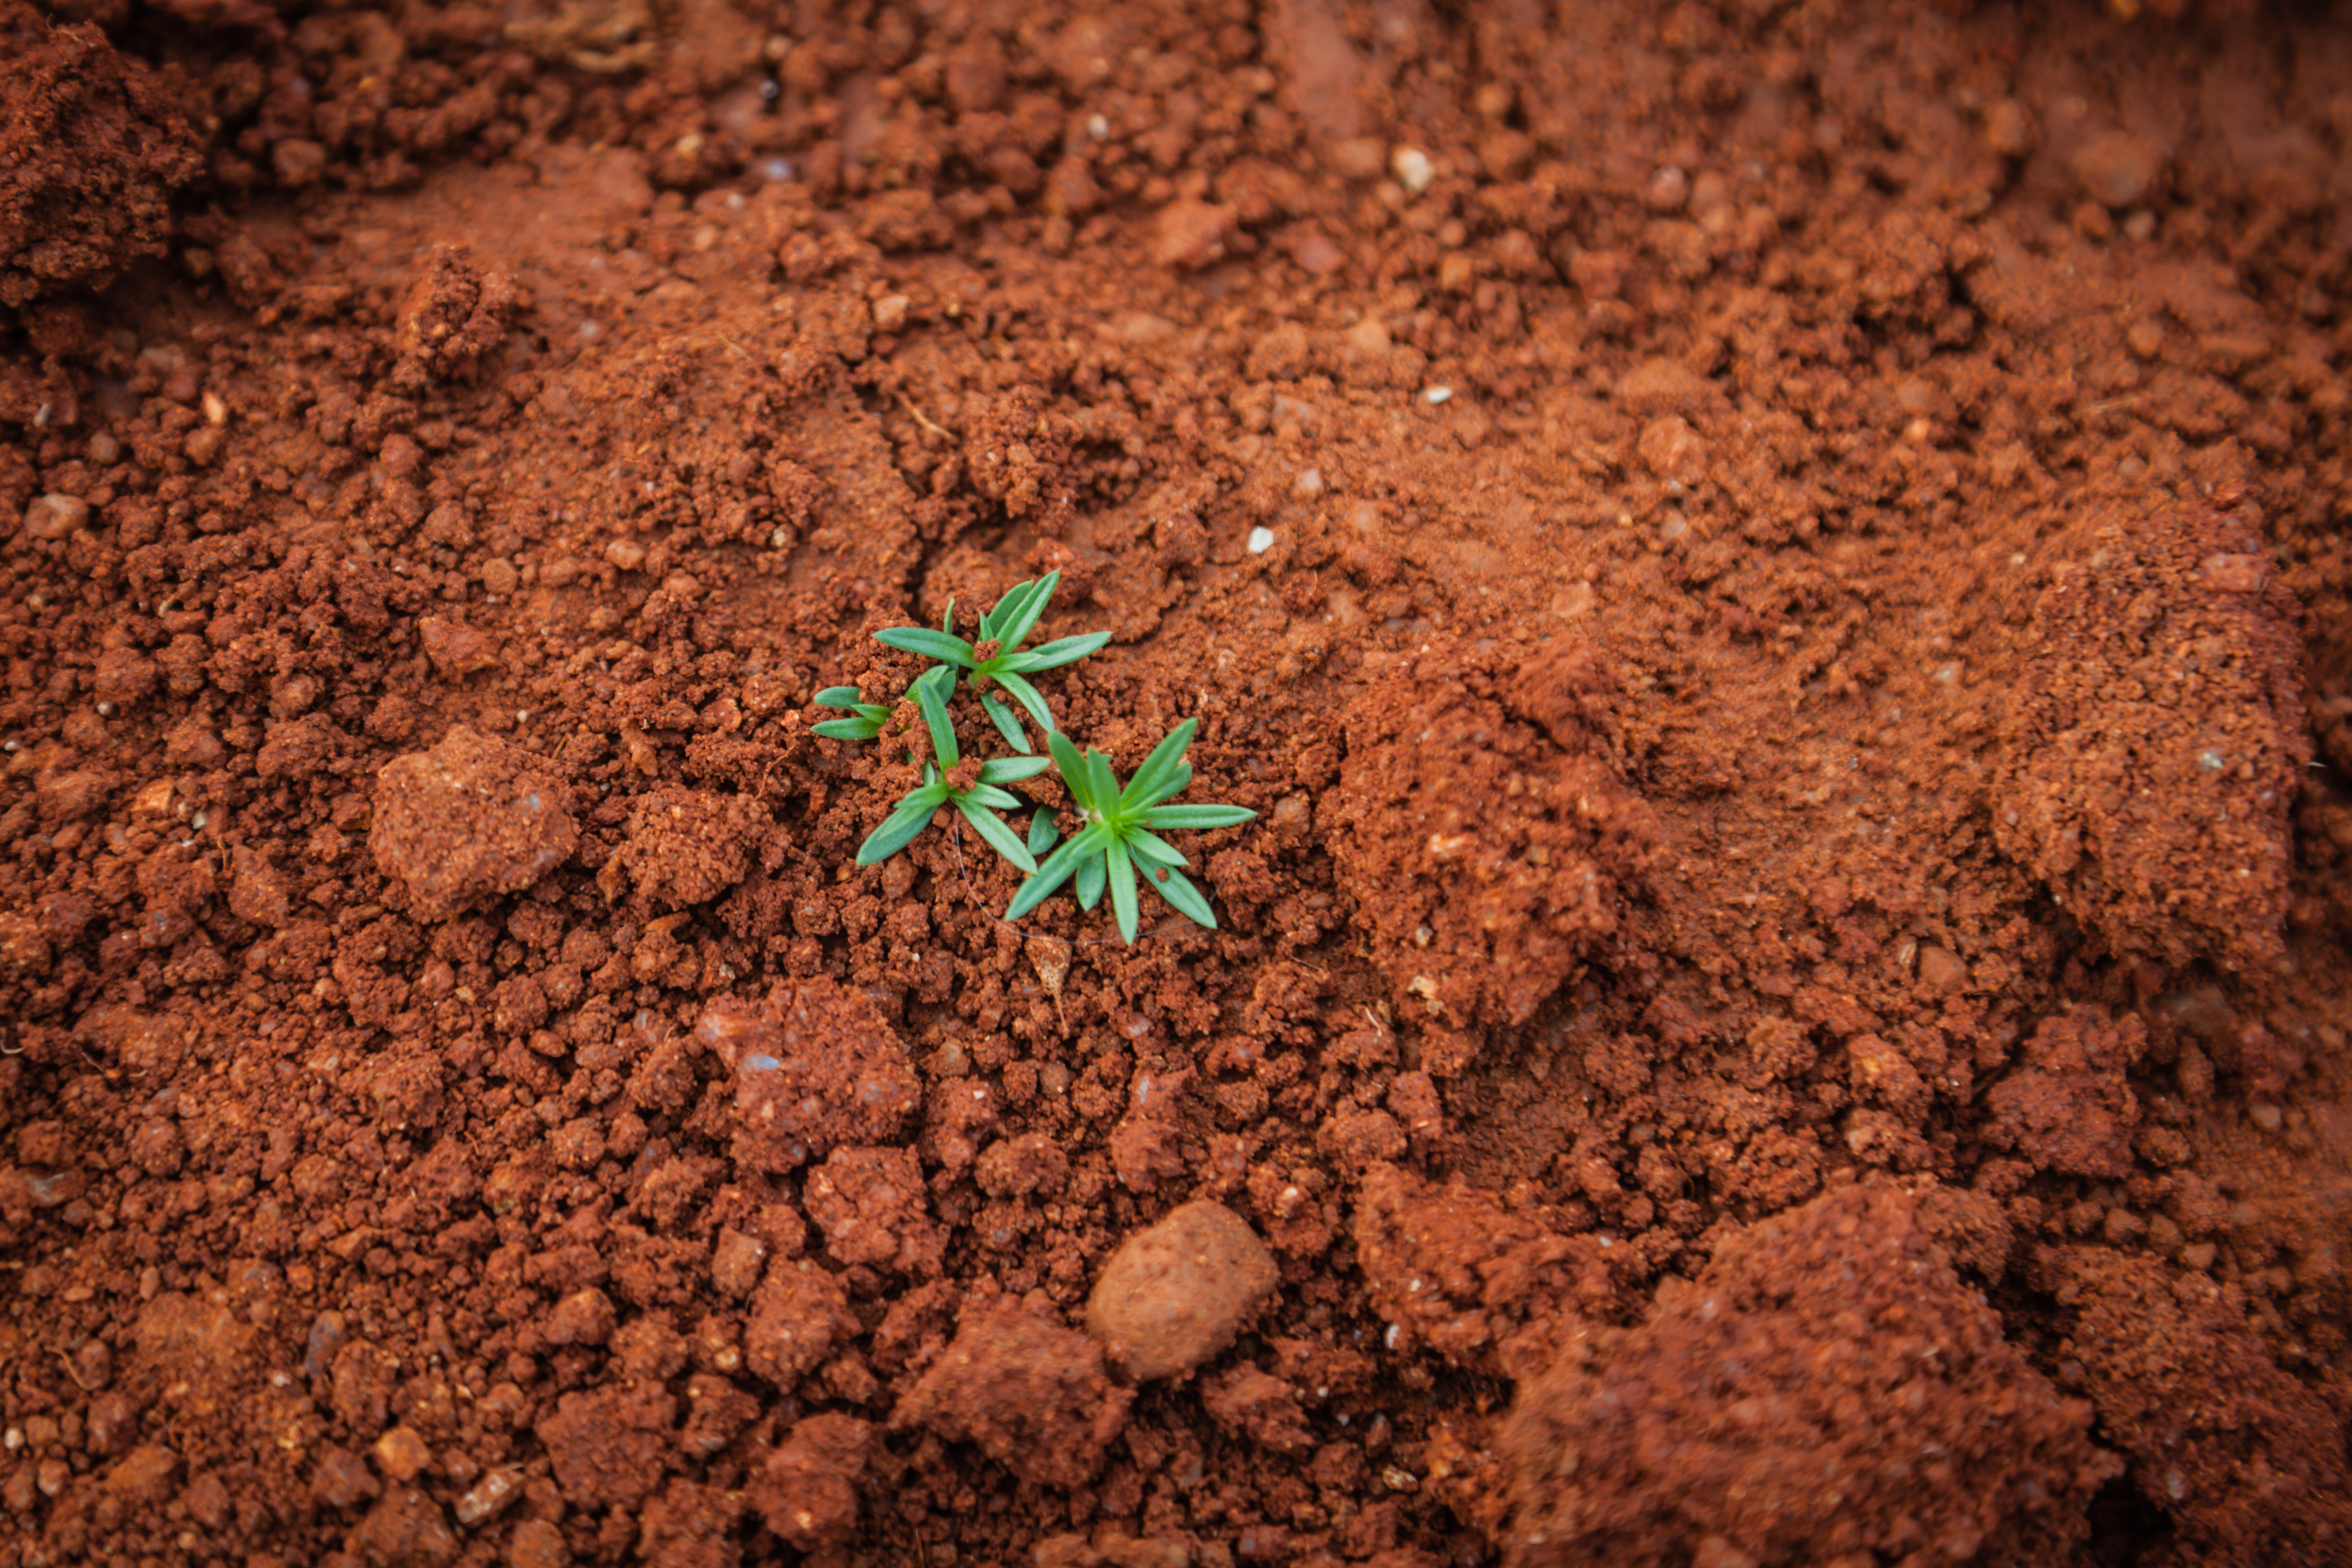 brown soil with small plants beginning to grow